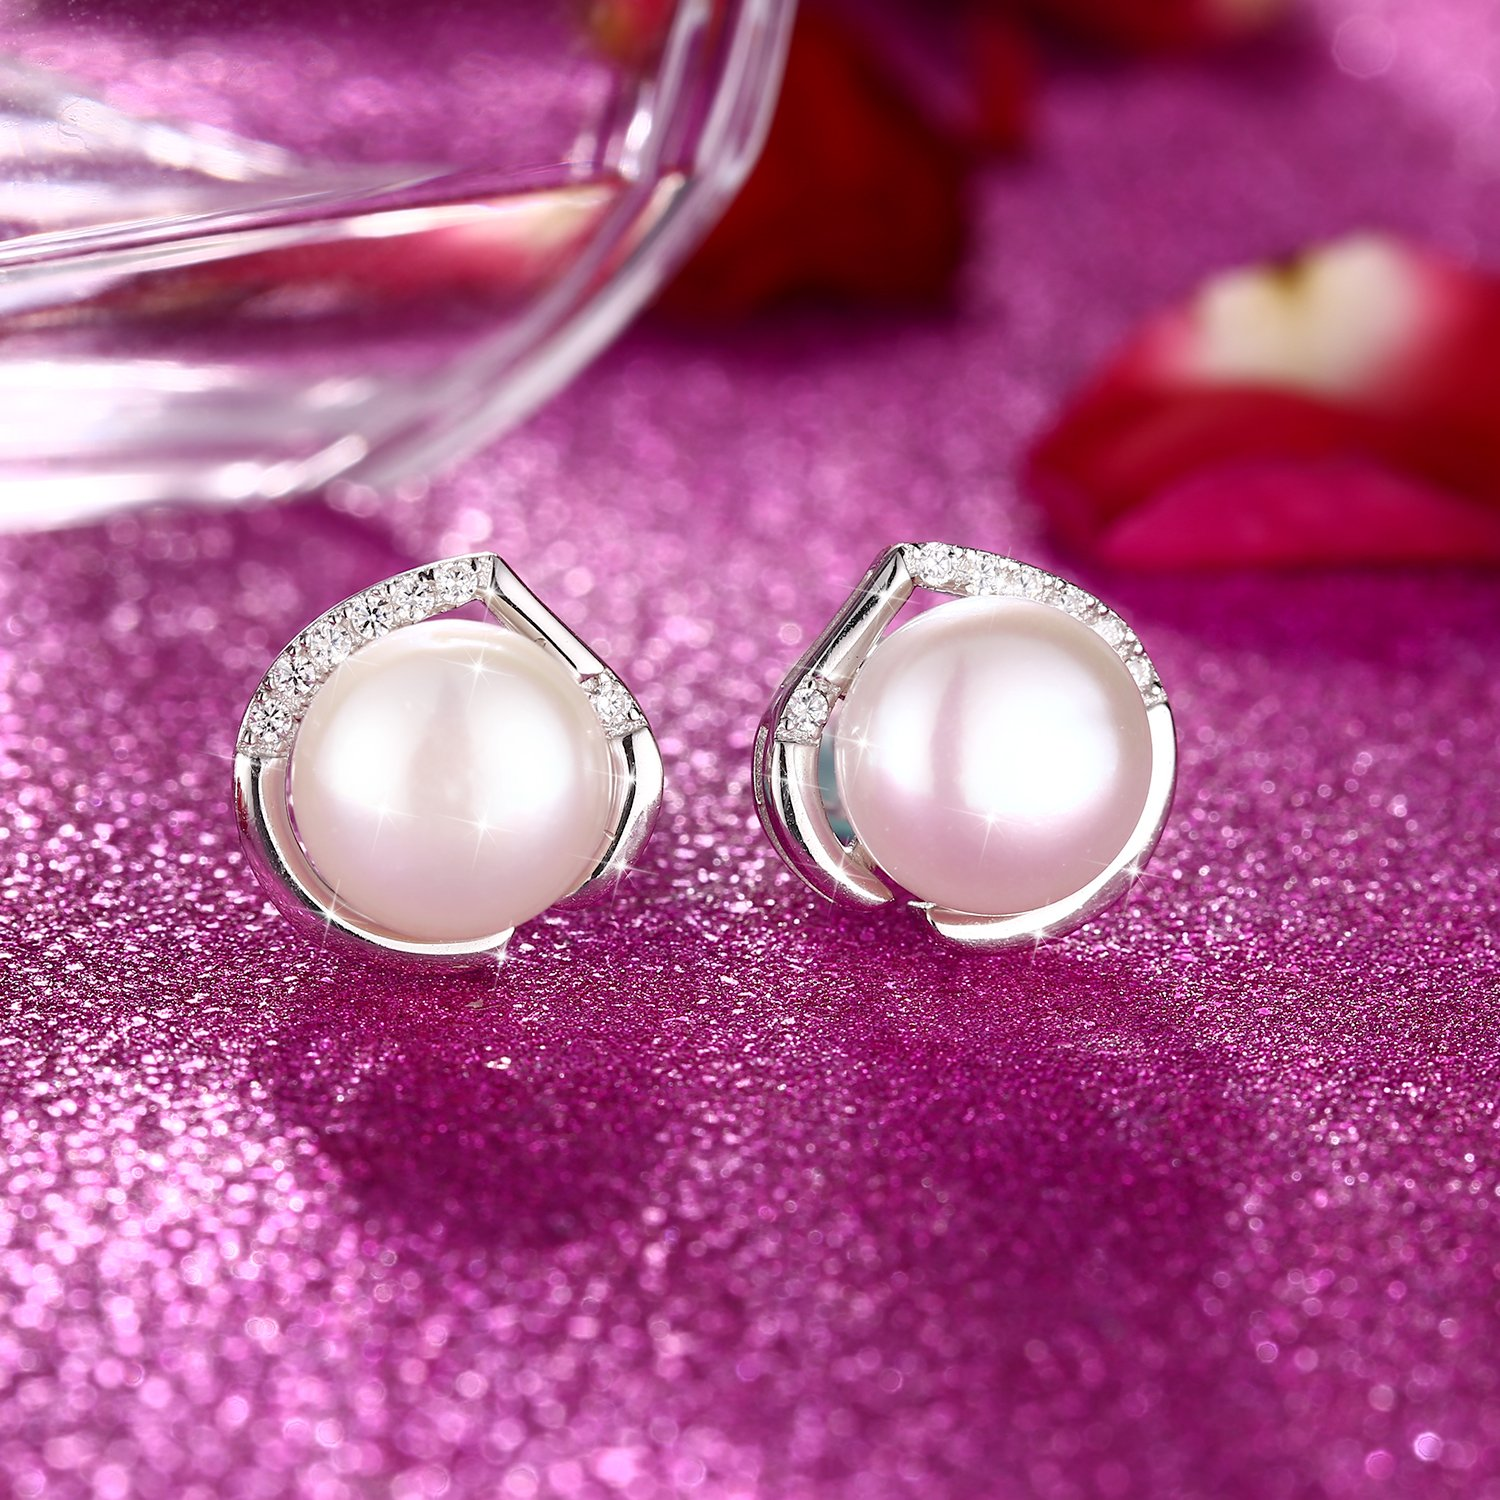 J.Rosée Freshwater Cultured Pearl Earrings, Stud Earrings with 925 Sterling Silver and 5A Cubic Zirconia, Jewelry Gifts for Women Girls by J.Rosée (Image #3)